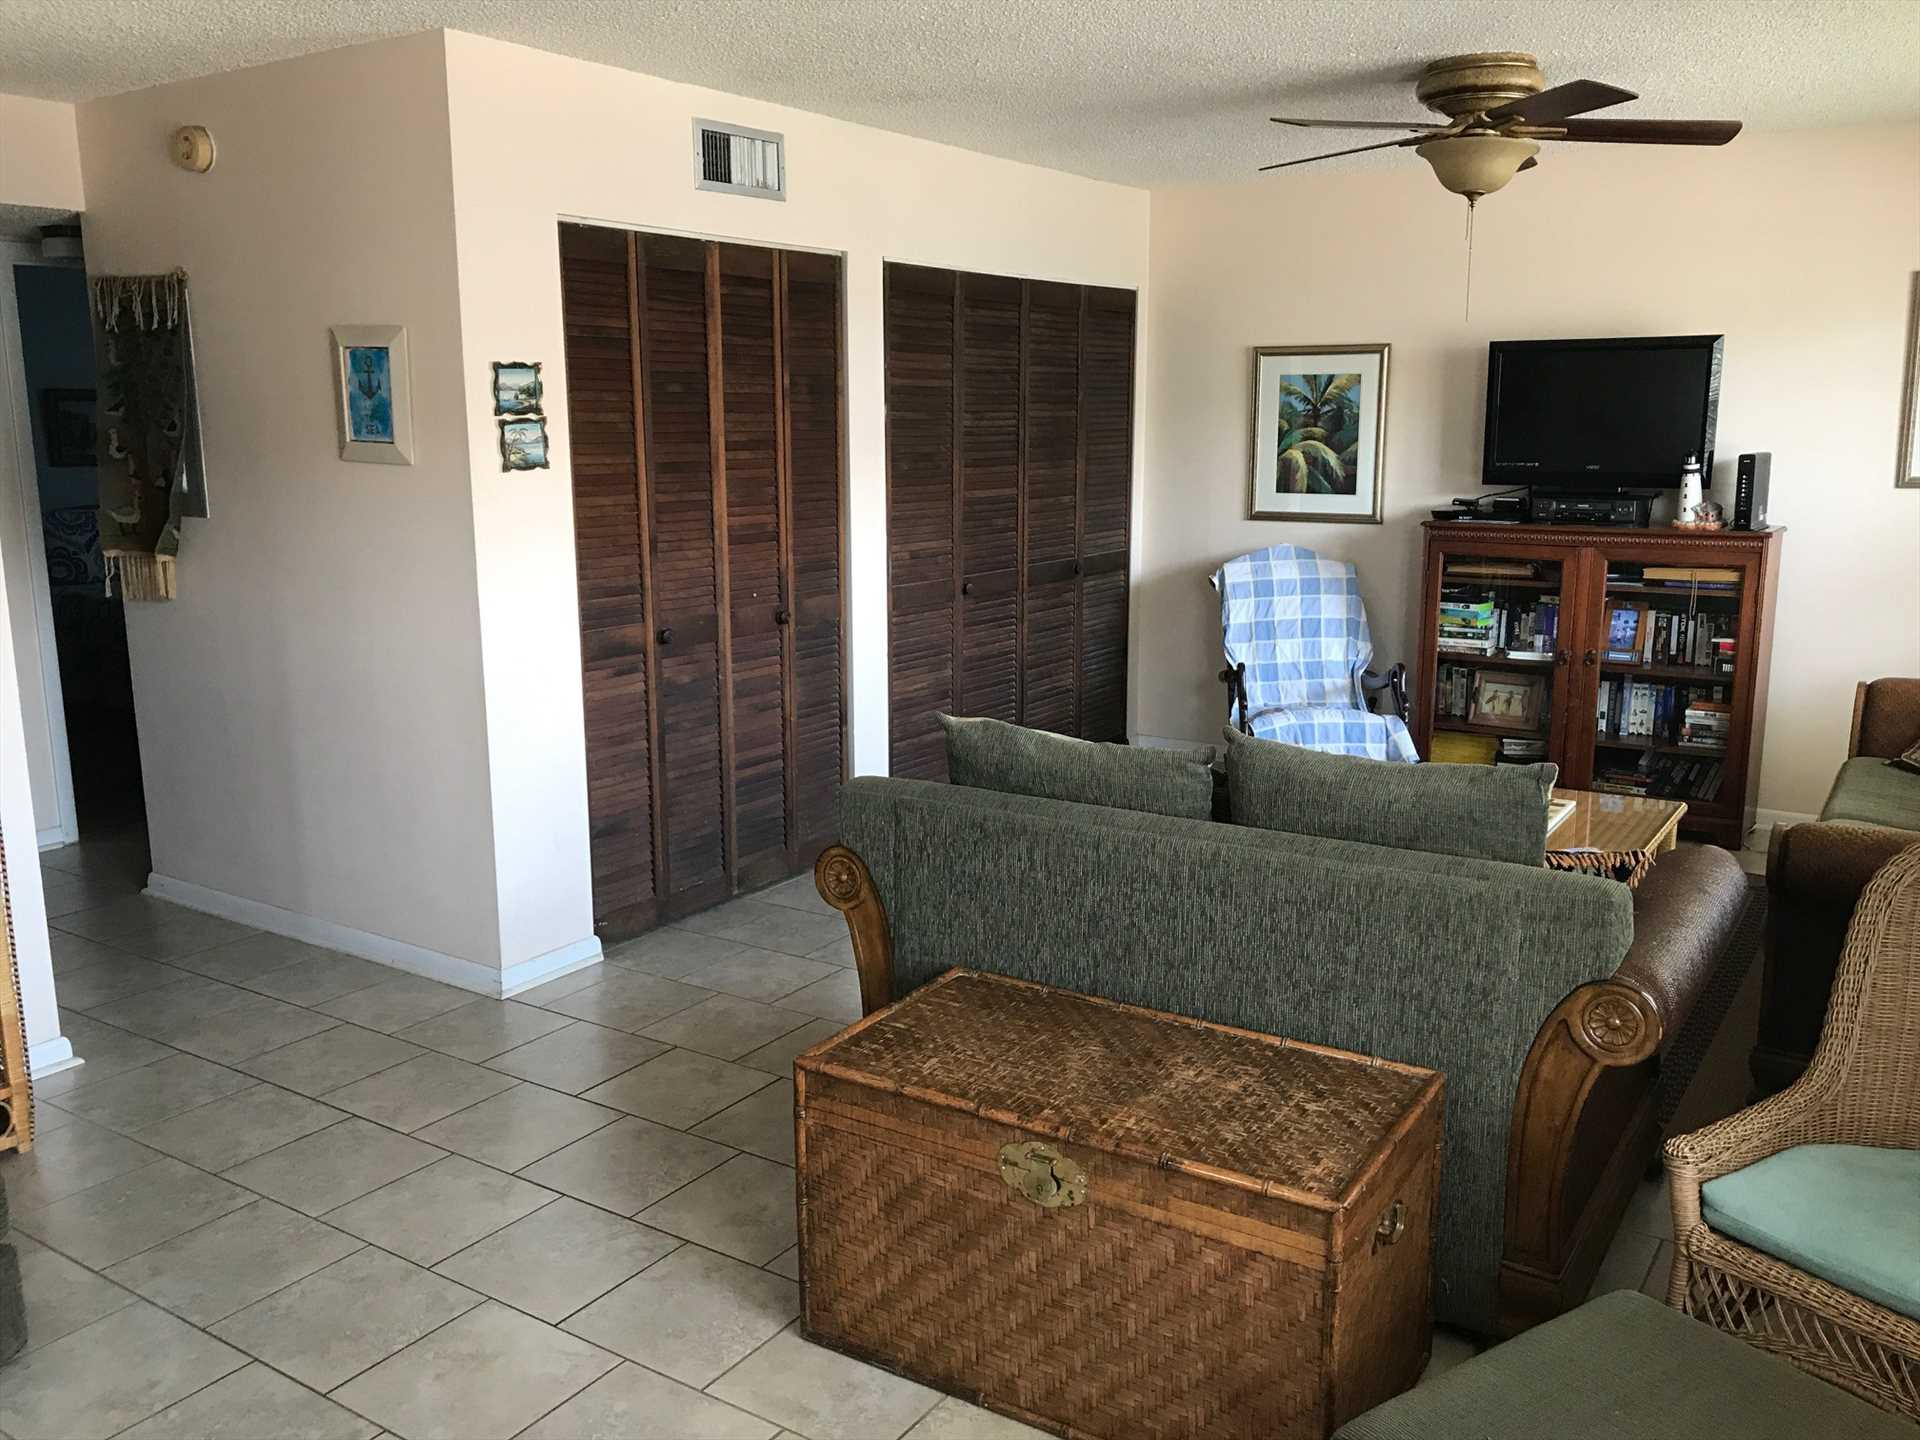 Downstairs Living Room w/Full Size Washer Dryer